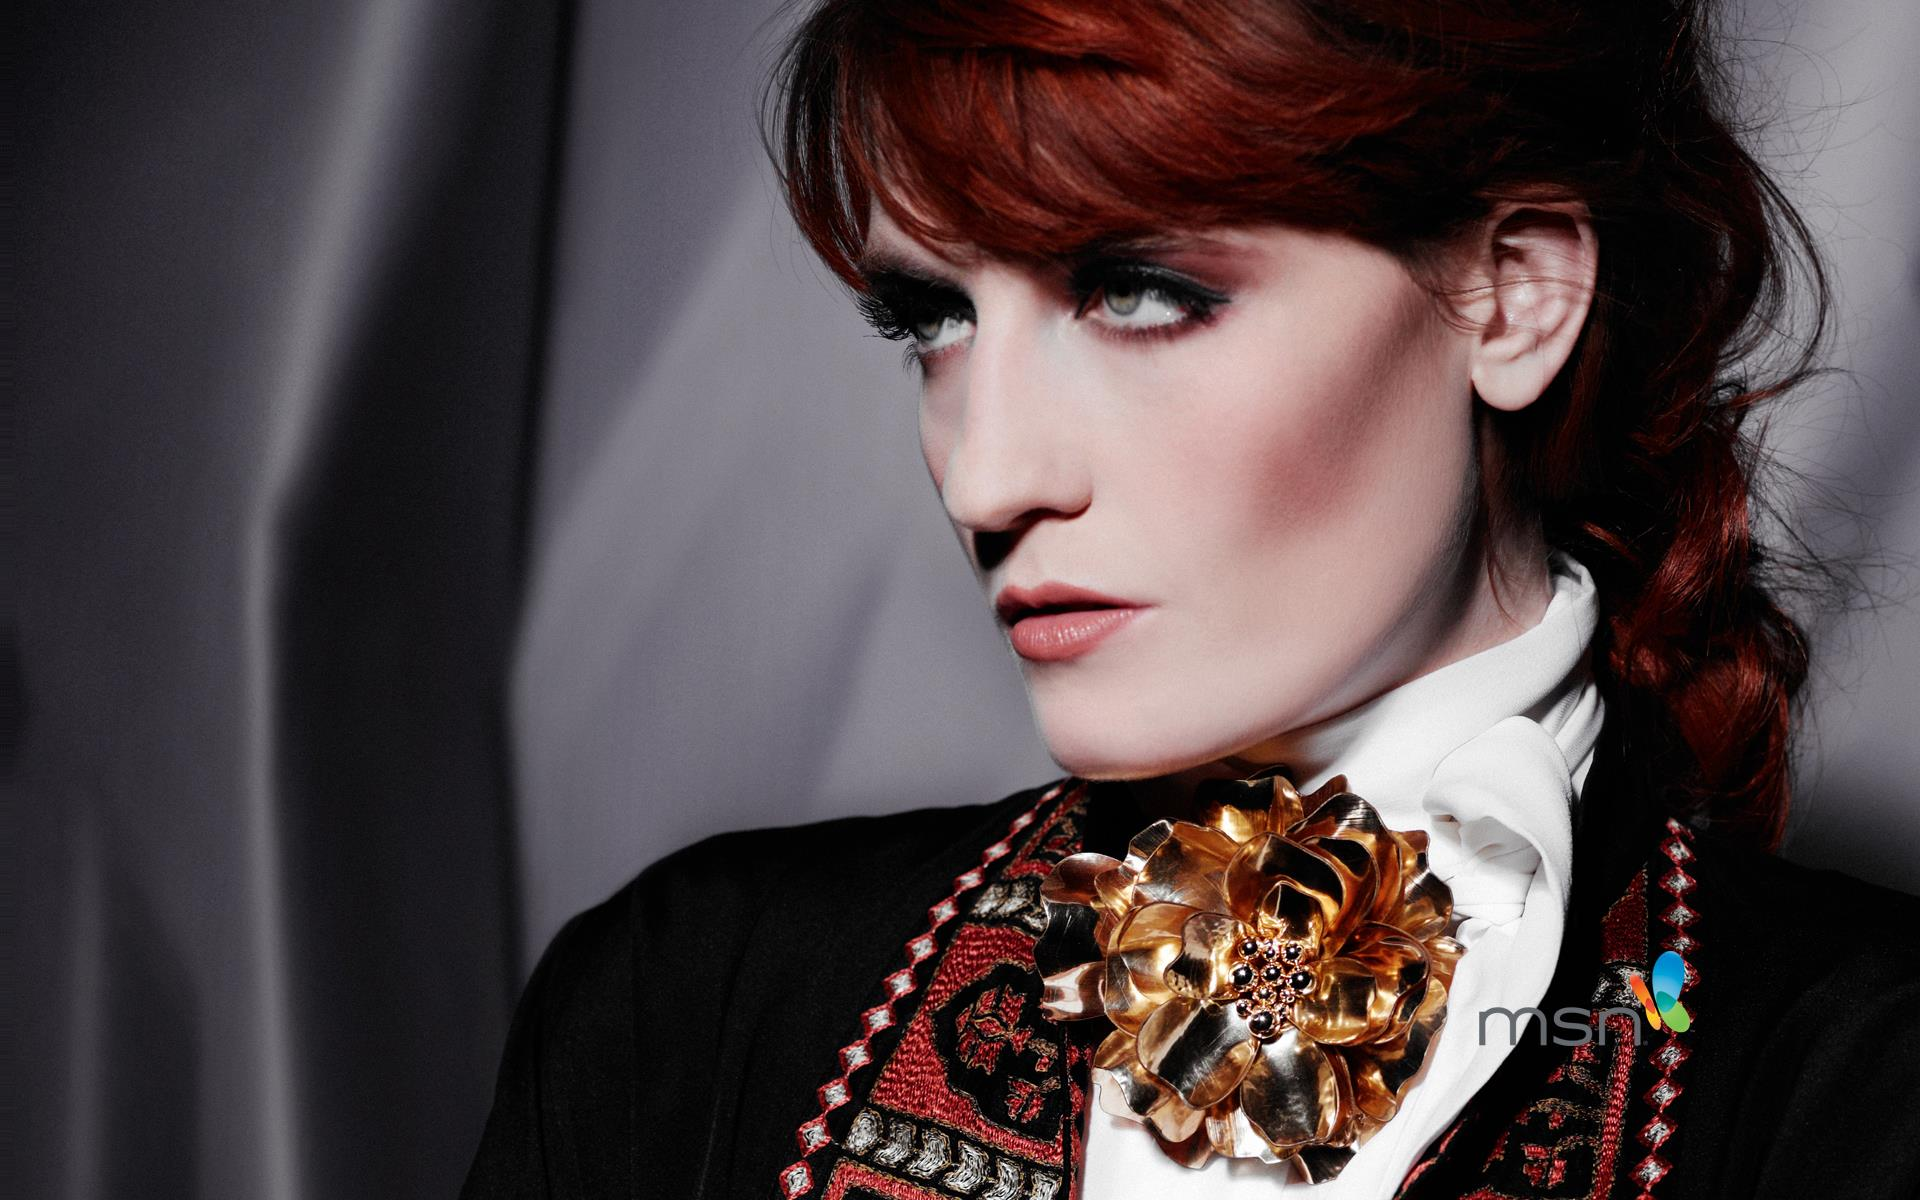 Florence Welch Photoshoot 2015